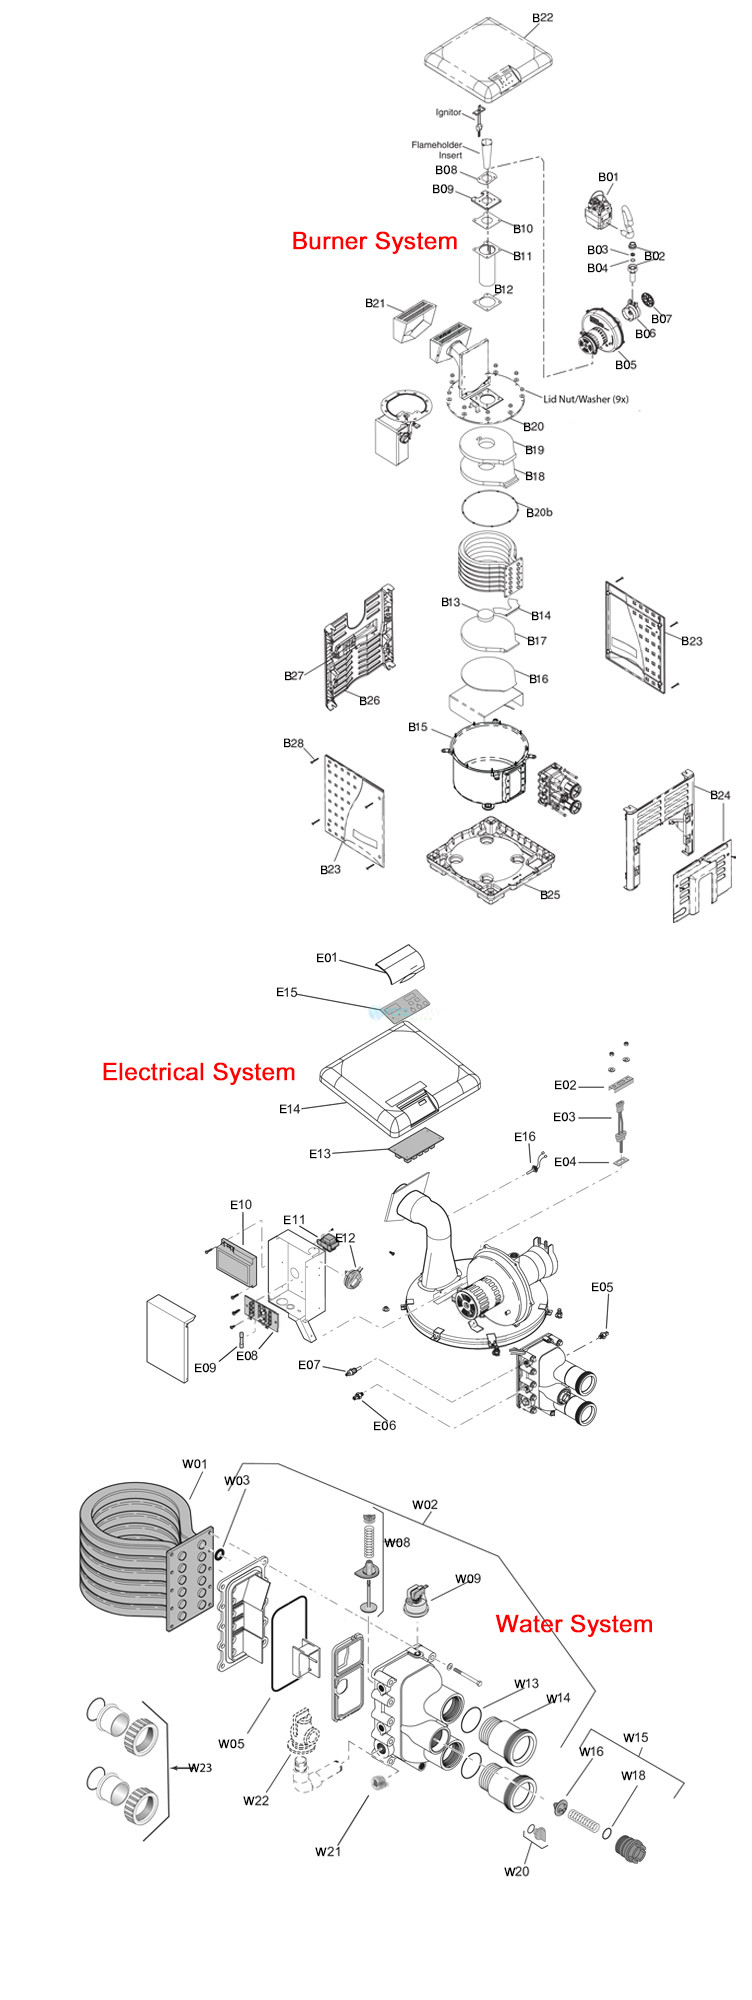 Pentair MasterTemp Low NOx Pool Heater - Electronic Ignition - Propane - 400,000 BTU | EC-462029 Parts Schematic